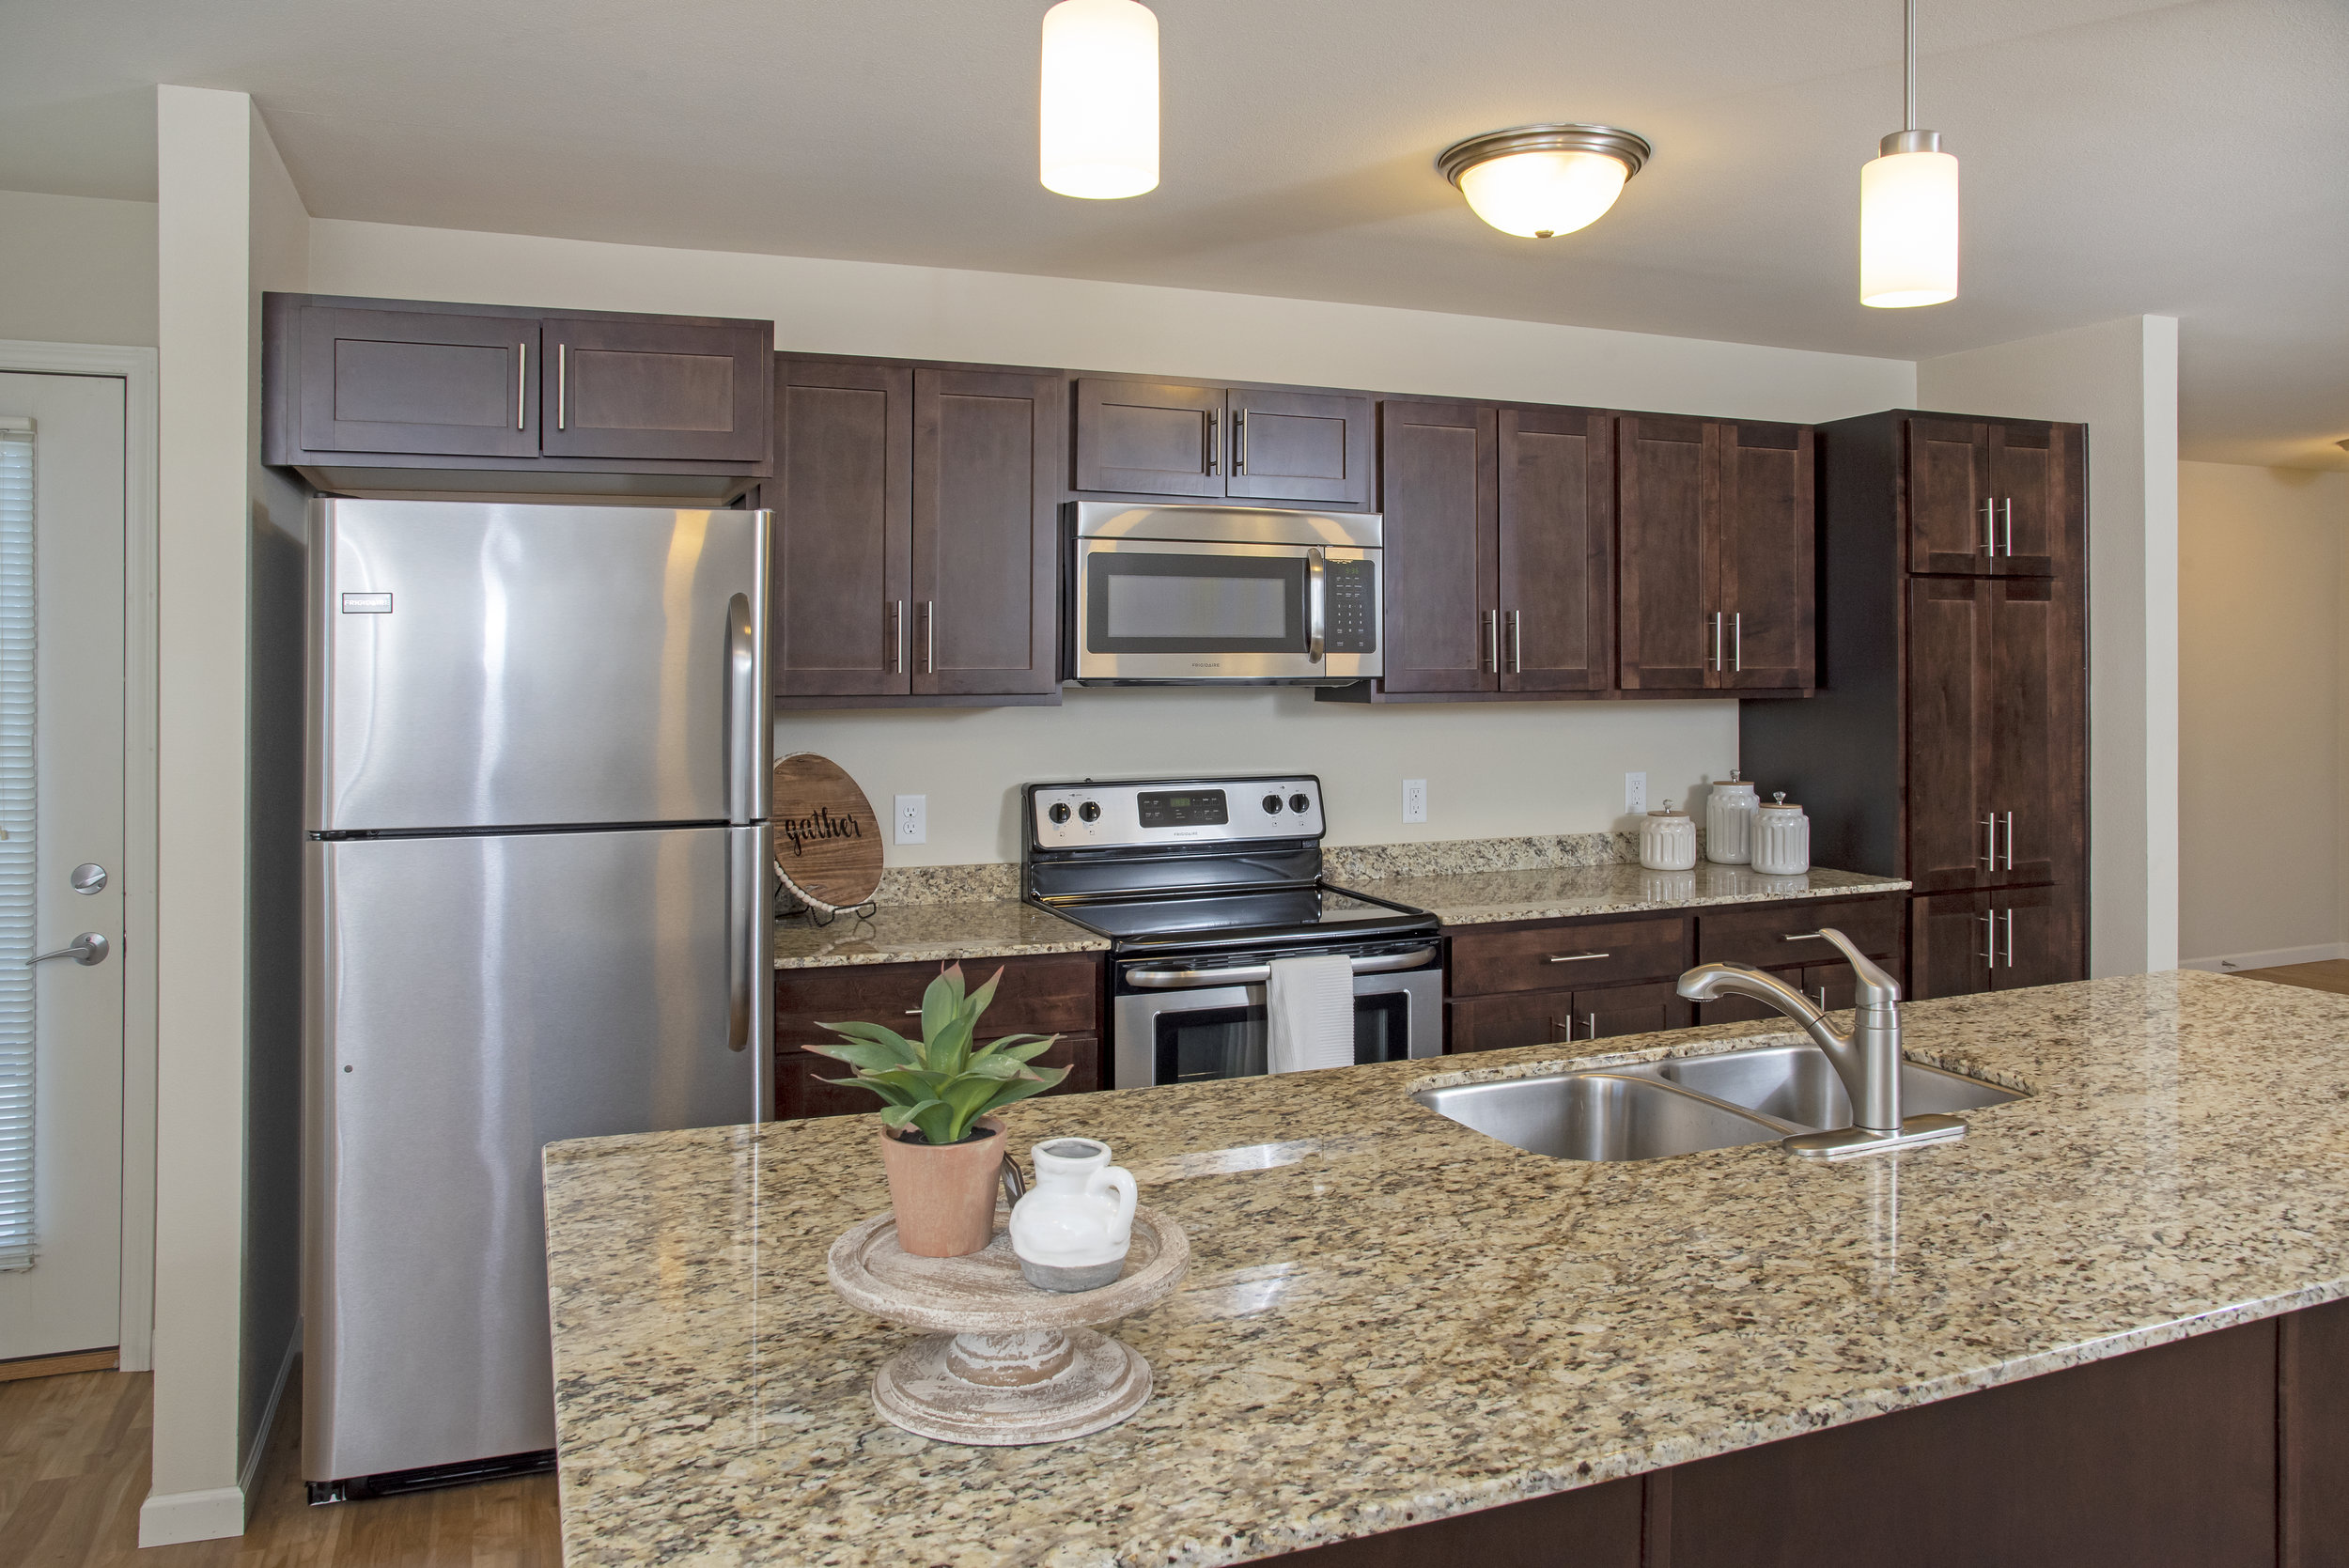 01 Welcome to Cardiinal Point Apartments!.jpg